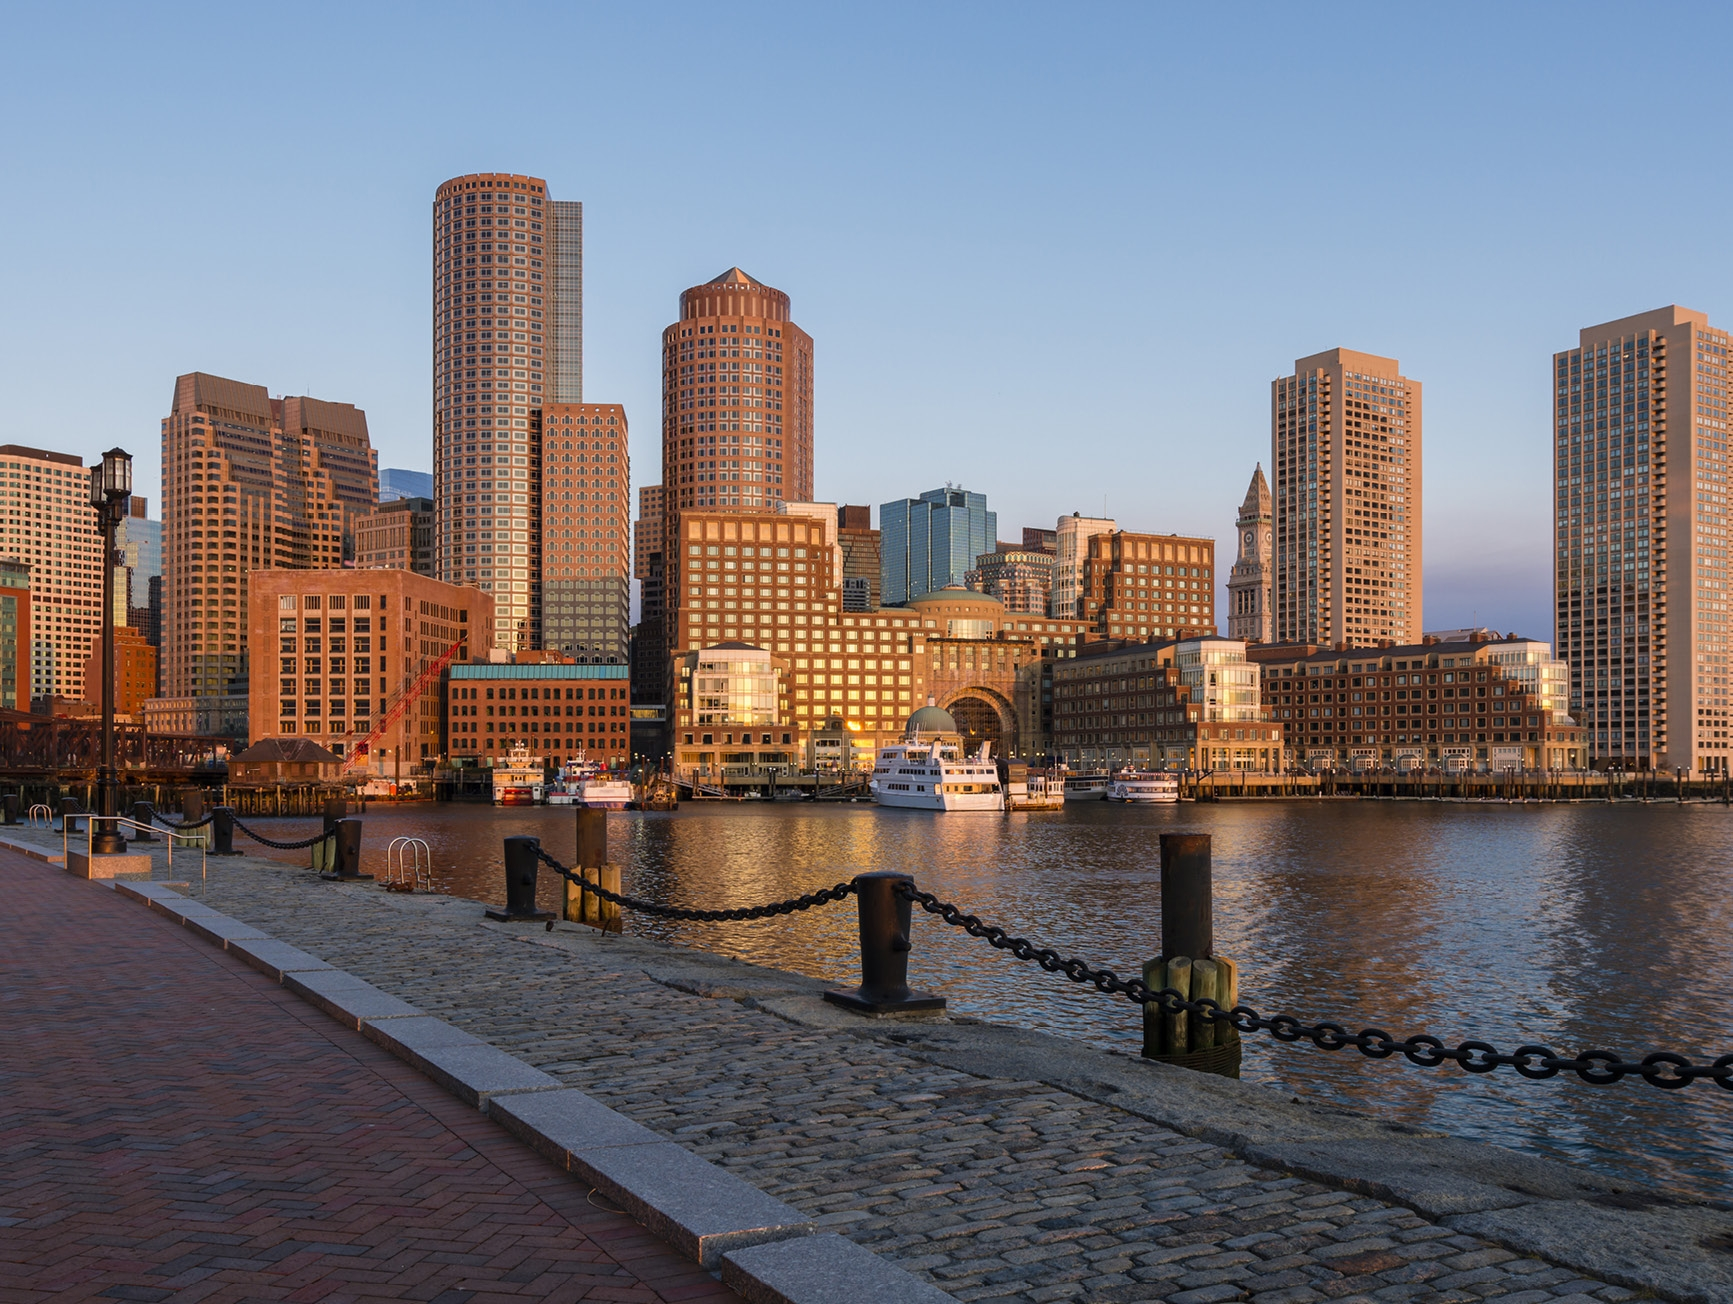 Boston's Seaport District Skyline